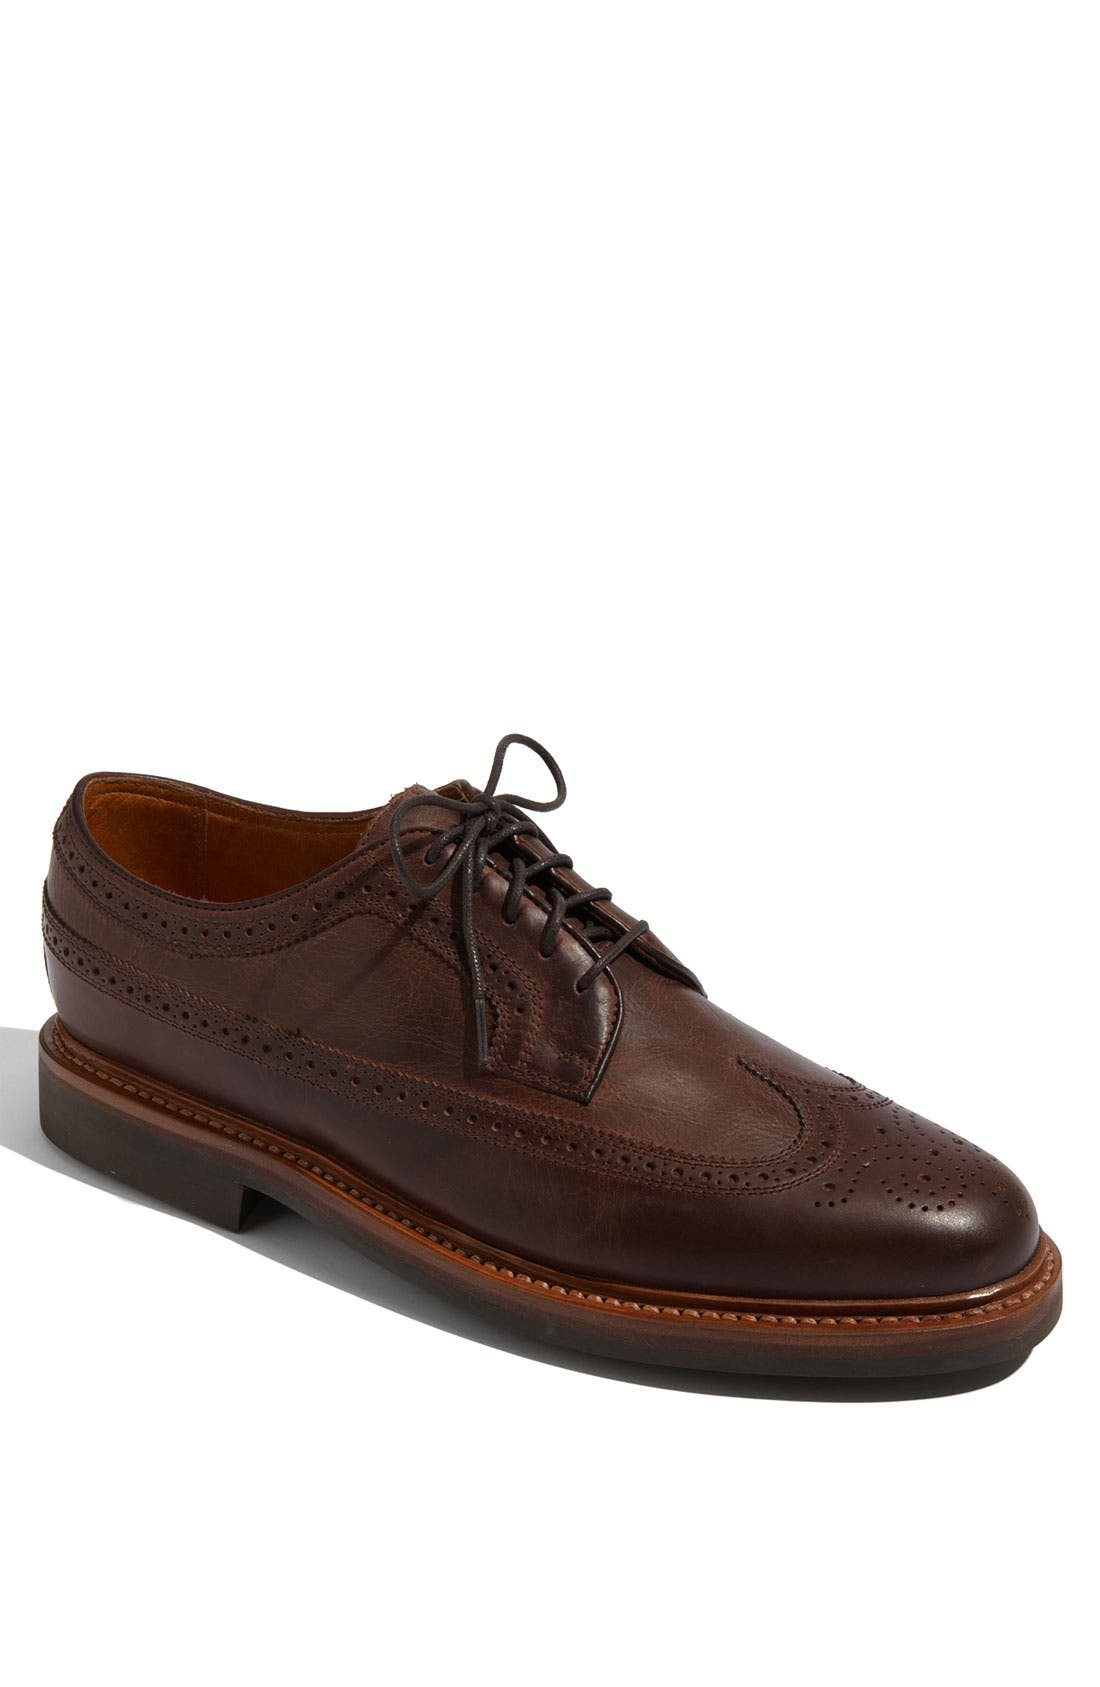 Alternate Image 1 Selected - Florsheim 'Haviland' Oxford